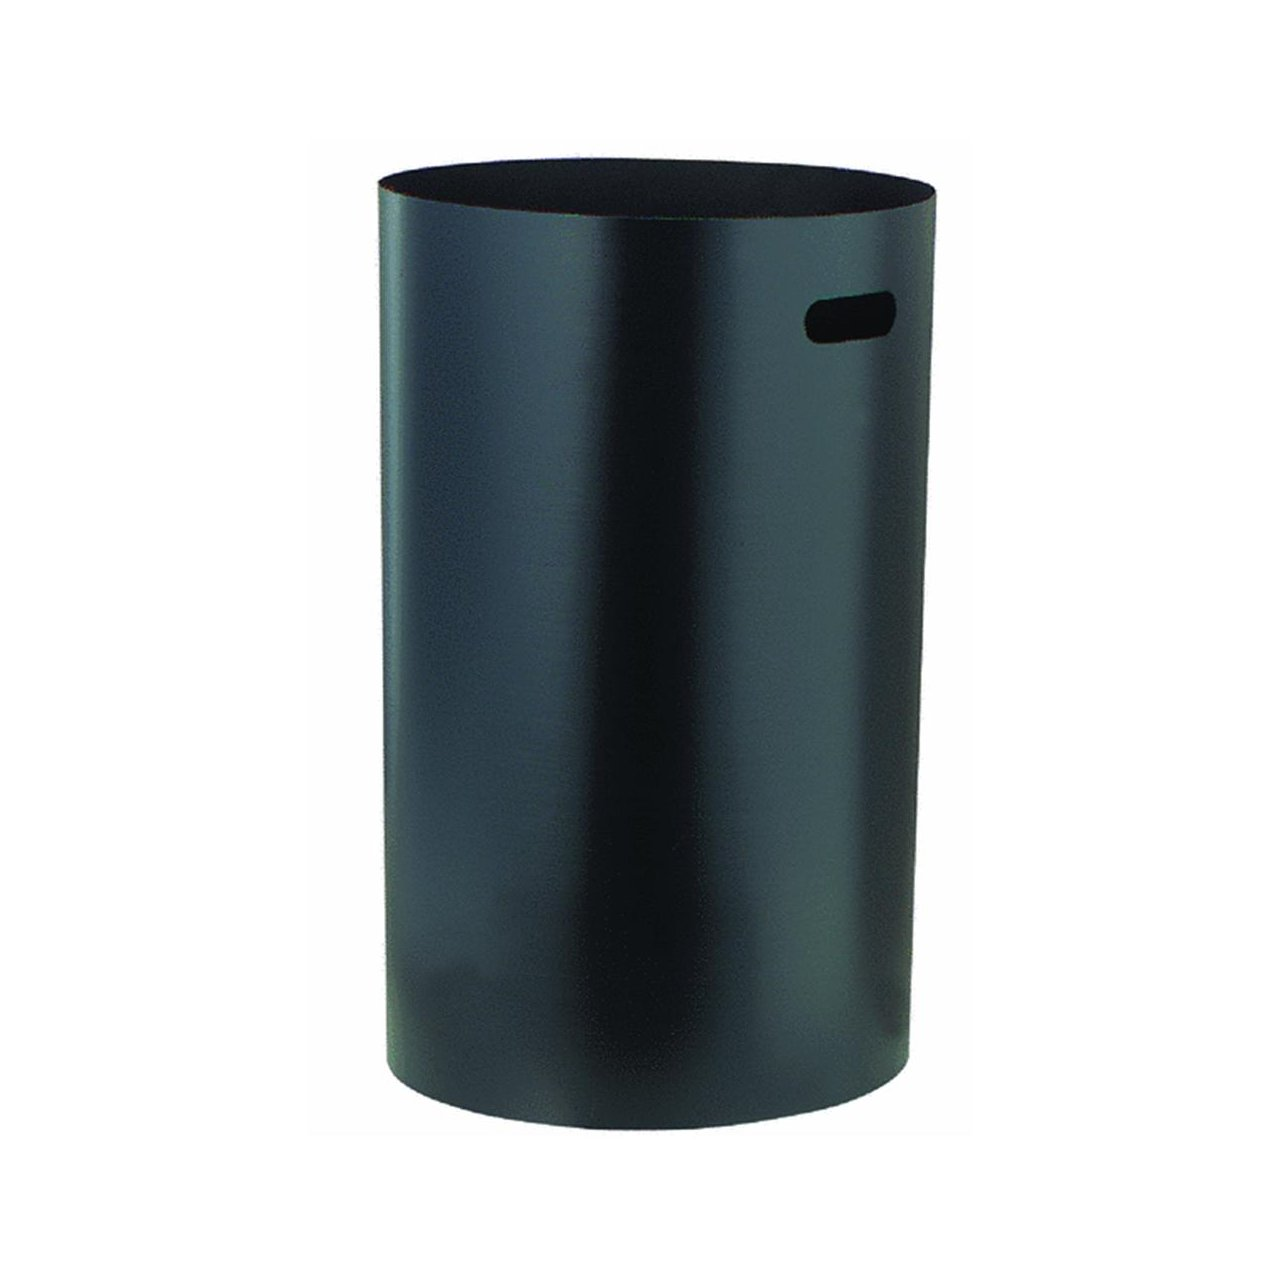 Lawson Products PRODUCTS40500 INC. 40500 Plastic Bag Holder